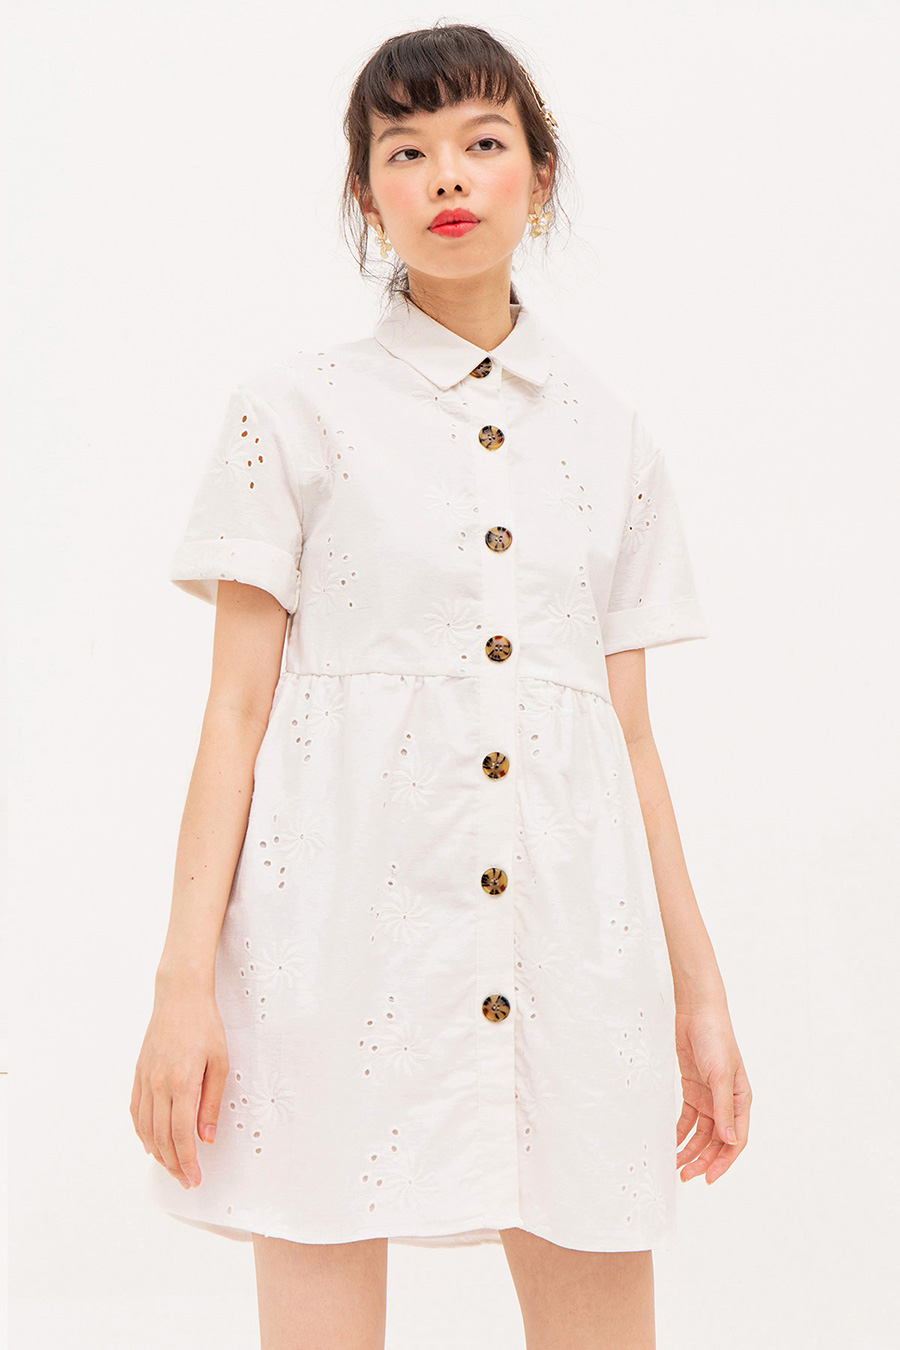 *RESTOCKED* WALLERIAN DRESS - IVORY